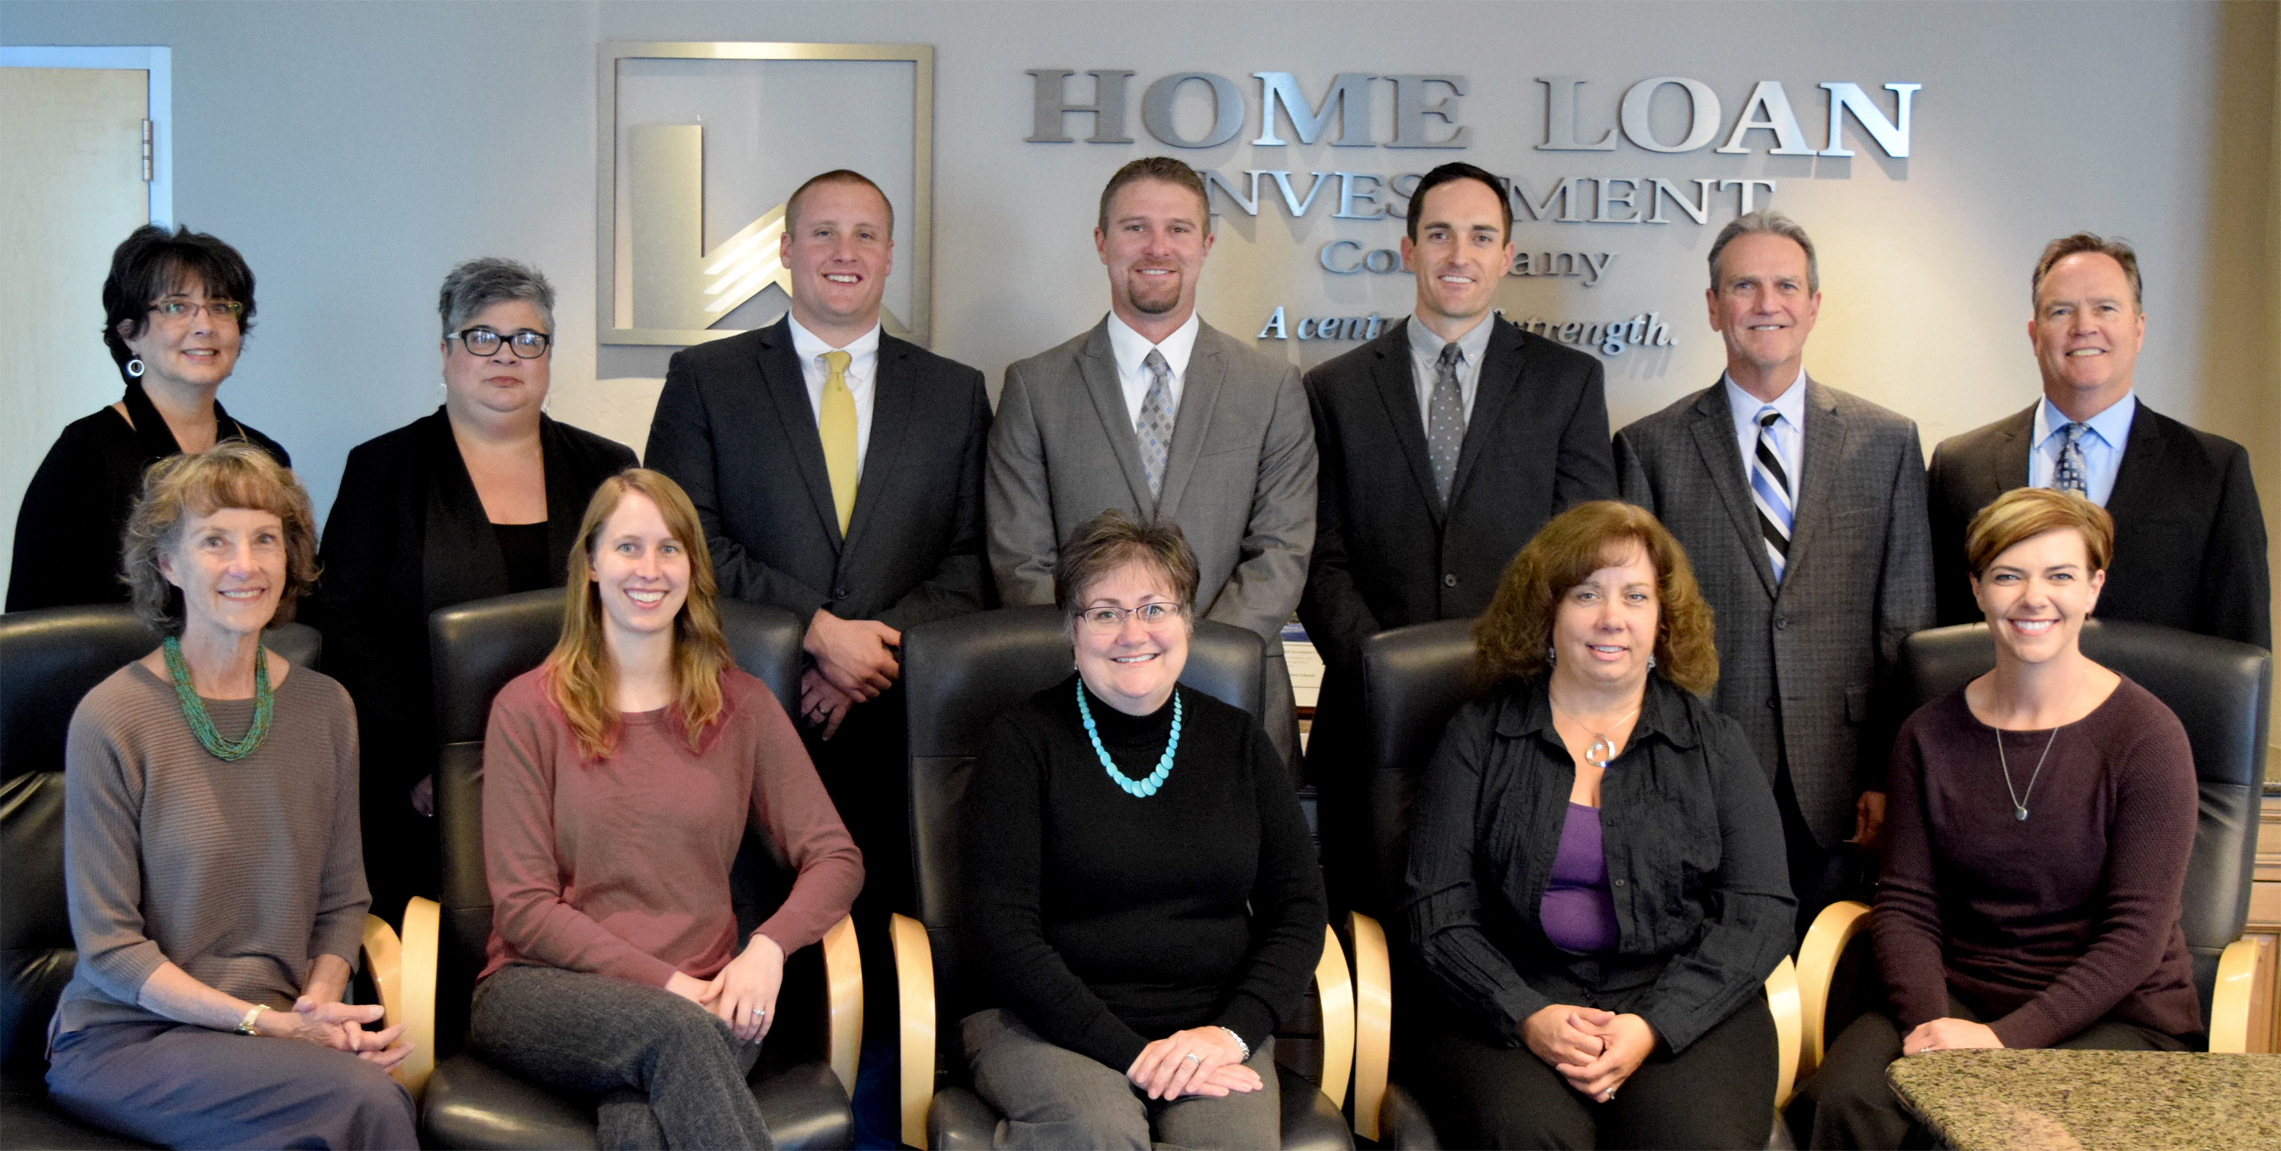 Home Loan Employees 2014